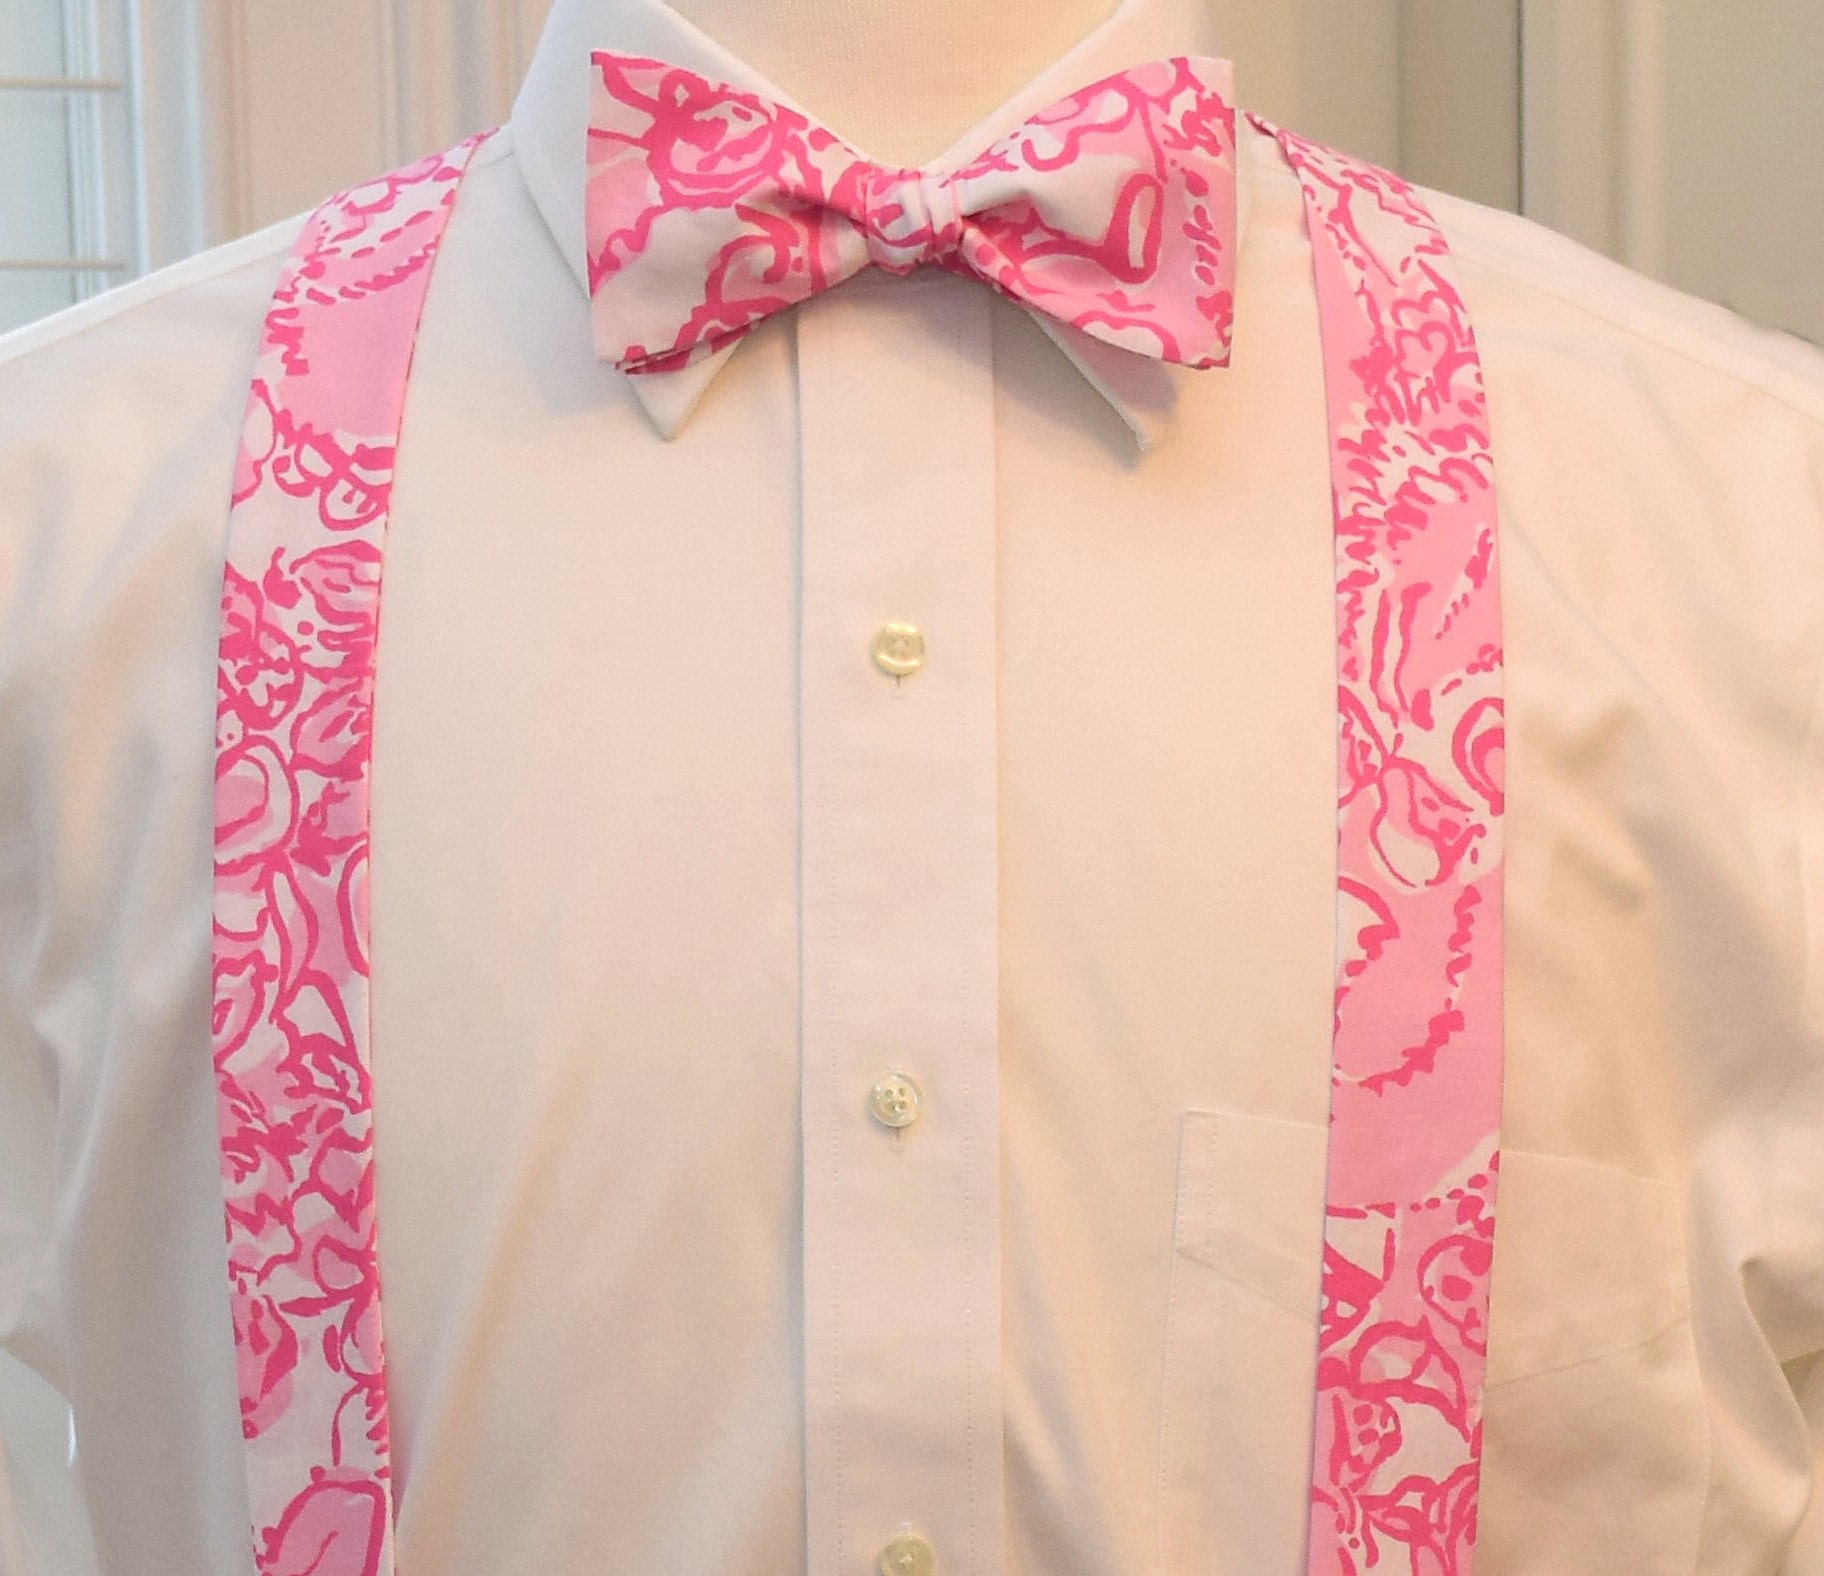 30207b70e043 Men's Suspenders & Bow Tie set, Lilly pink She's A Fox, clip on ...